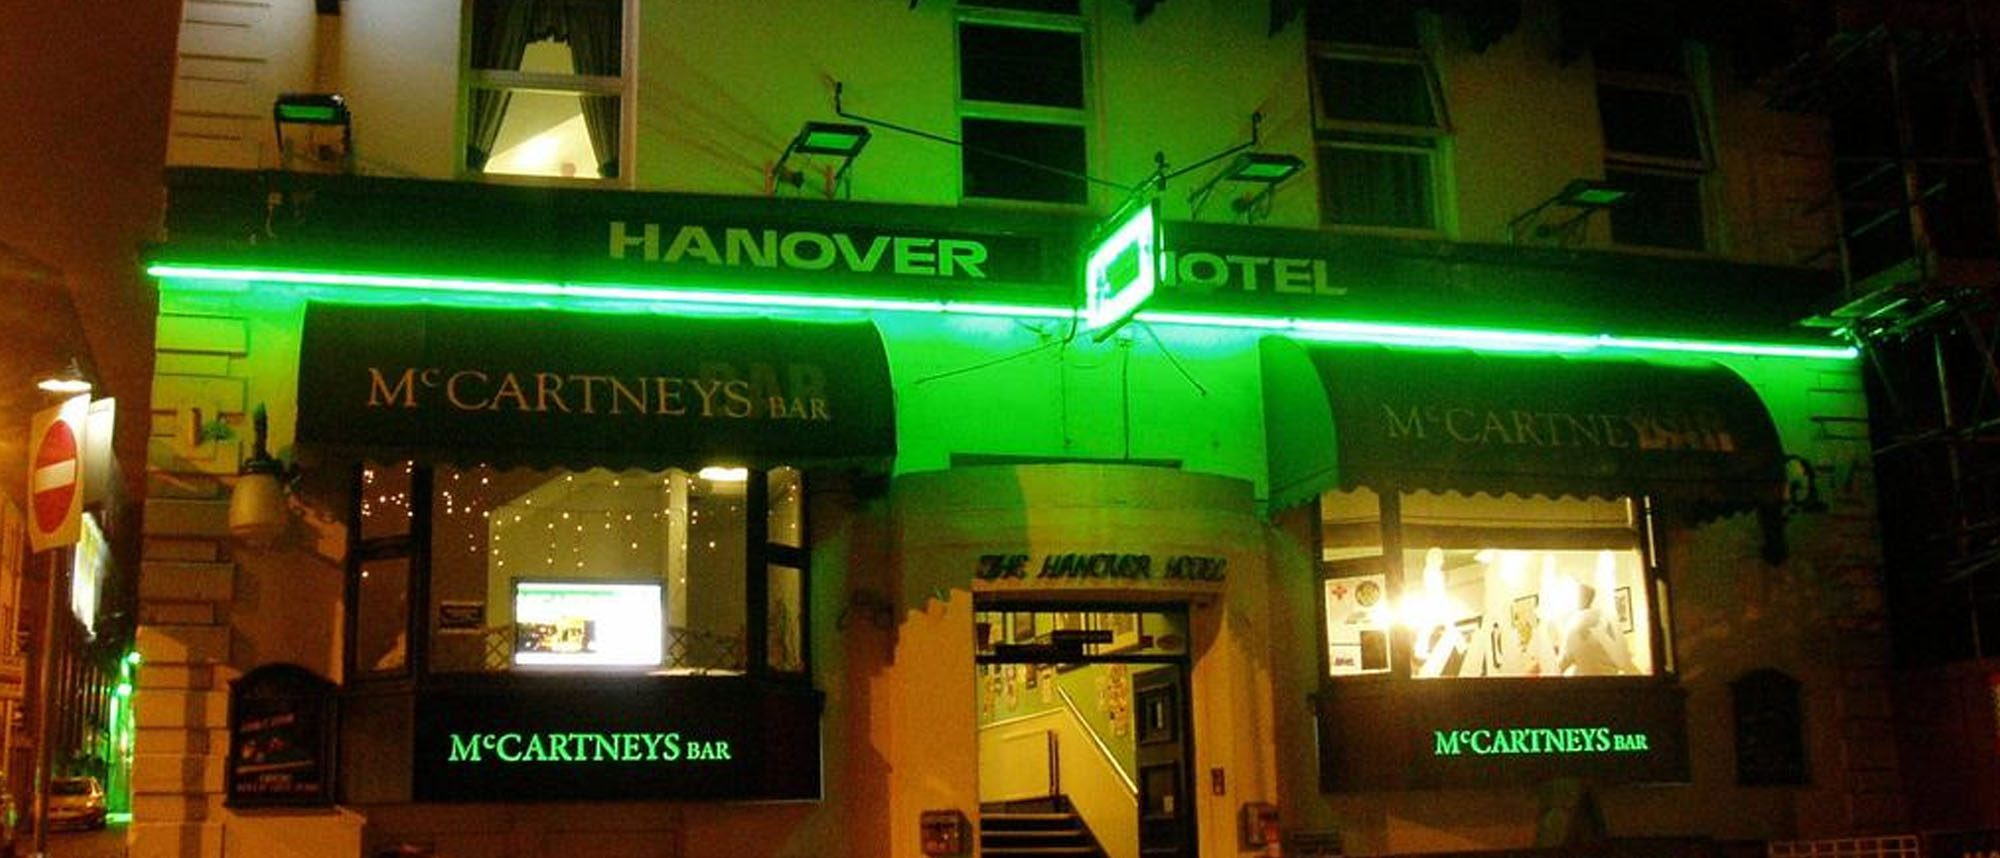 Hanover Hotel Liverpool